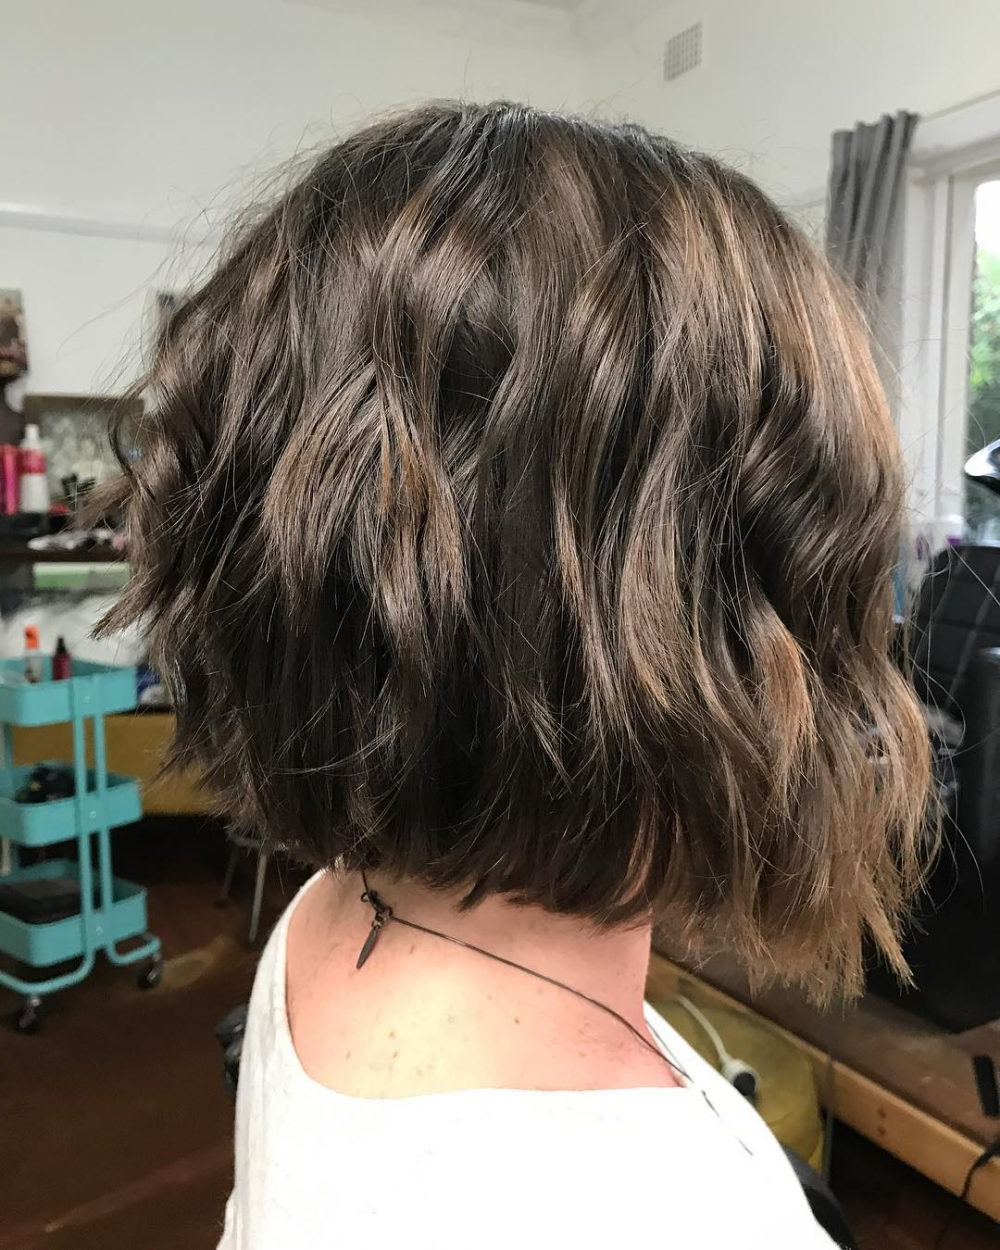 45 Chic Choppy Bob Hairstyles For 2018 Throughout Brown And Blonde Graduated Bob Hairstyles (View 8 of 20)